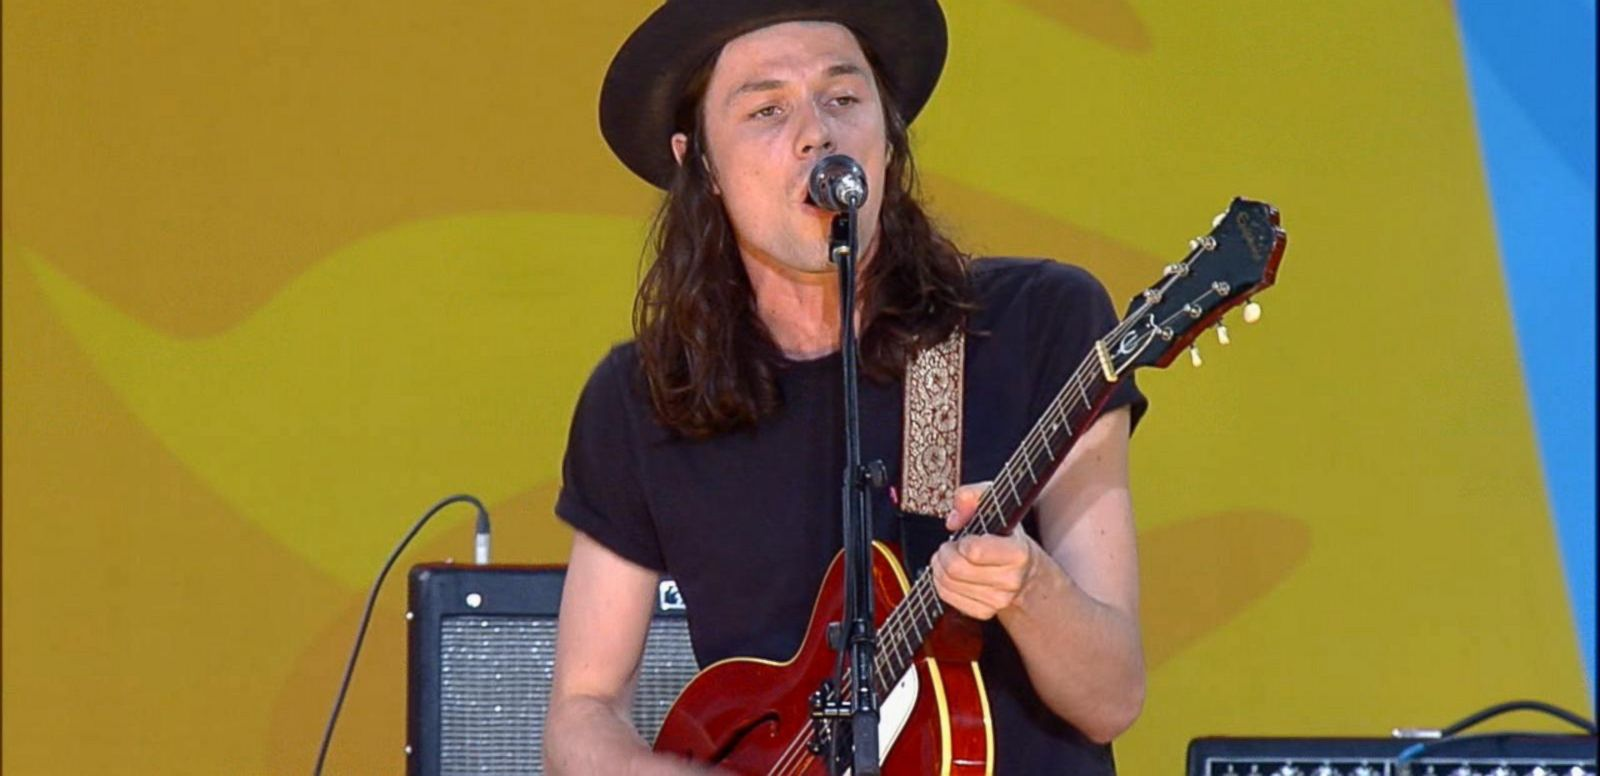 VIDEO: James Bay Sings 'Hold Back the River' on 'GMA'